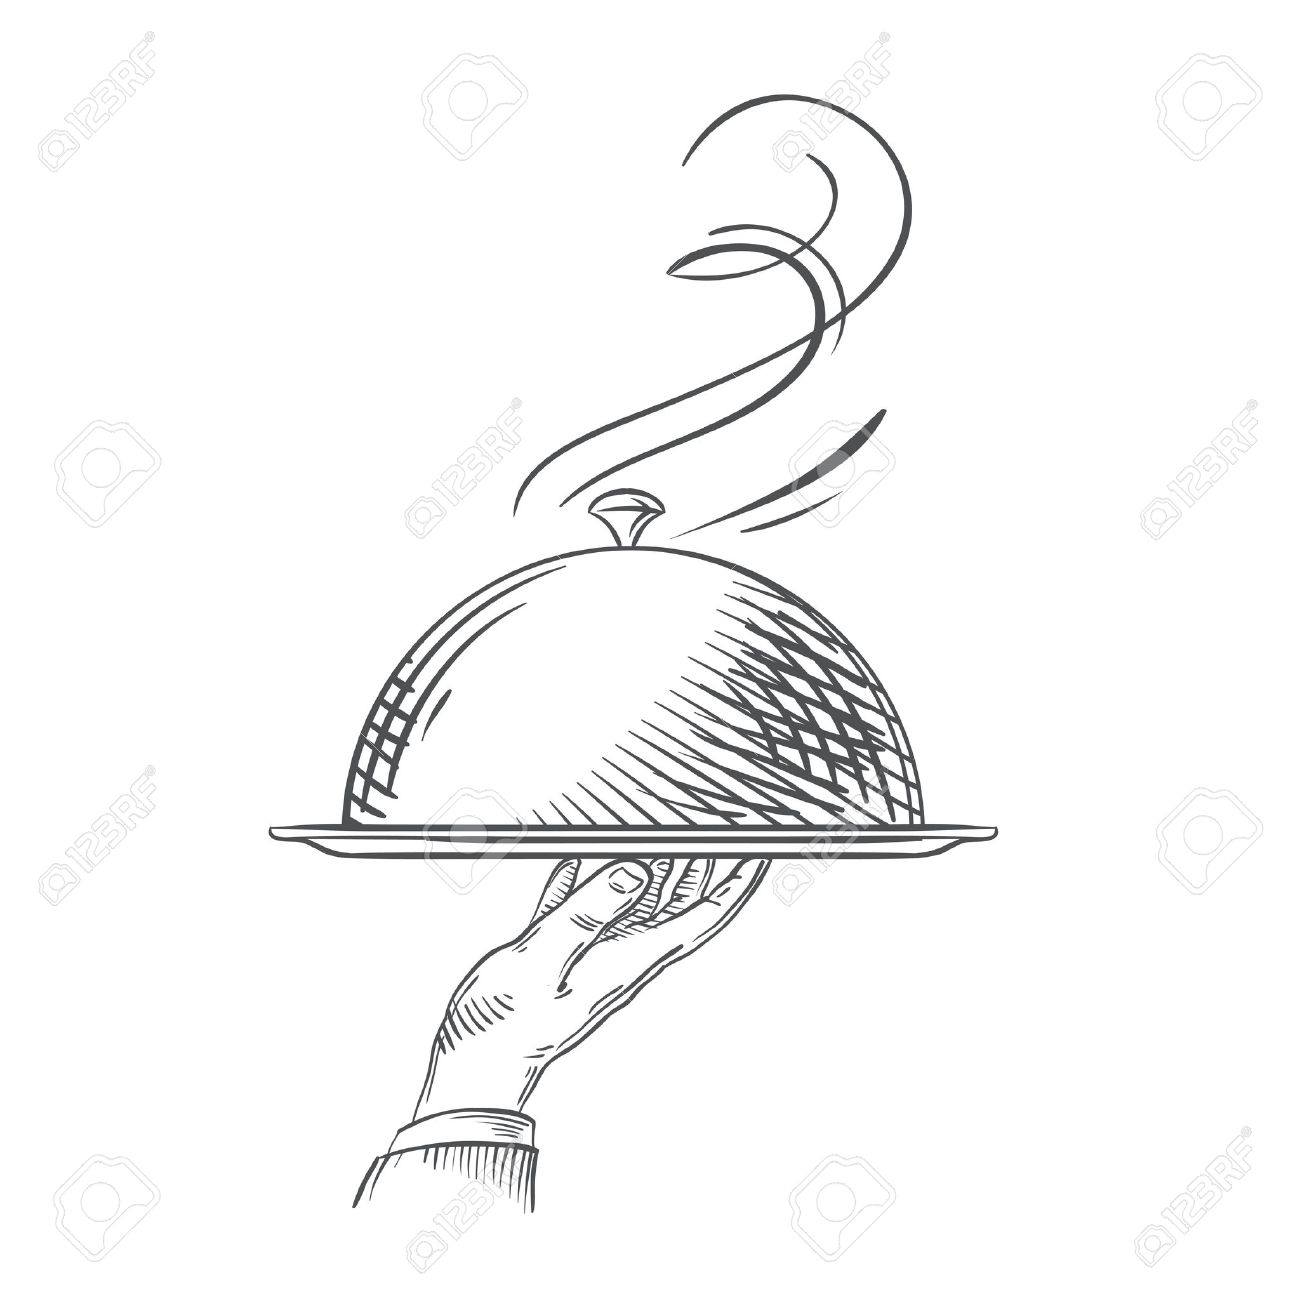 1300x1300 Hand Drawn Sketch Of A Hand Holding A Tray Of Food. Vector